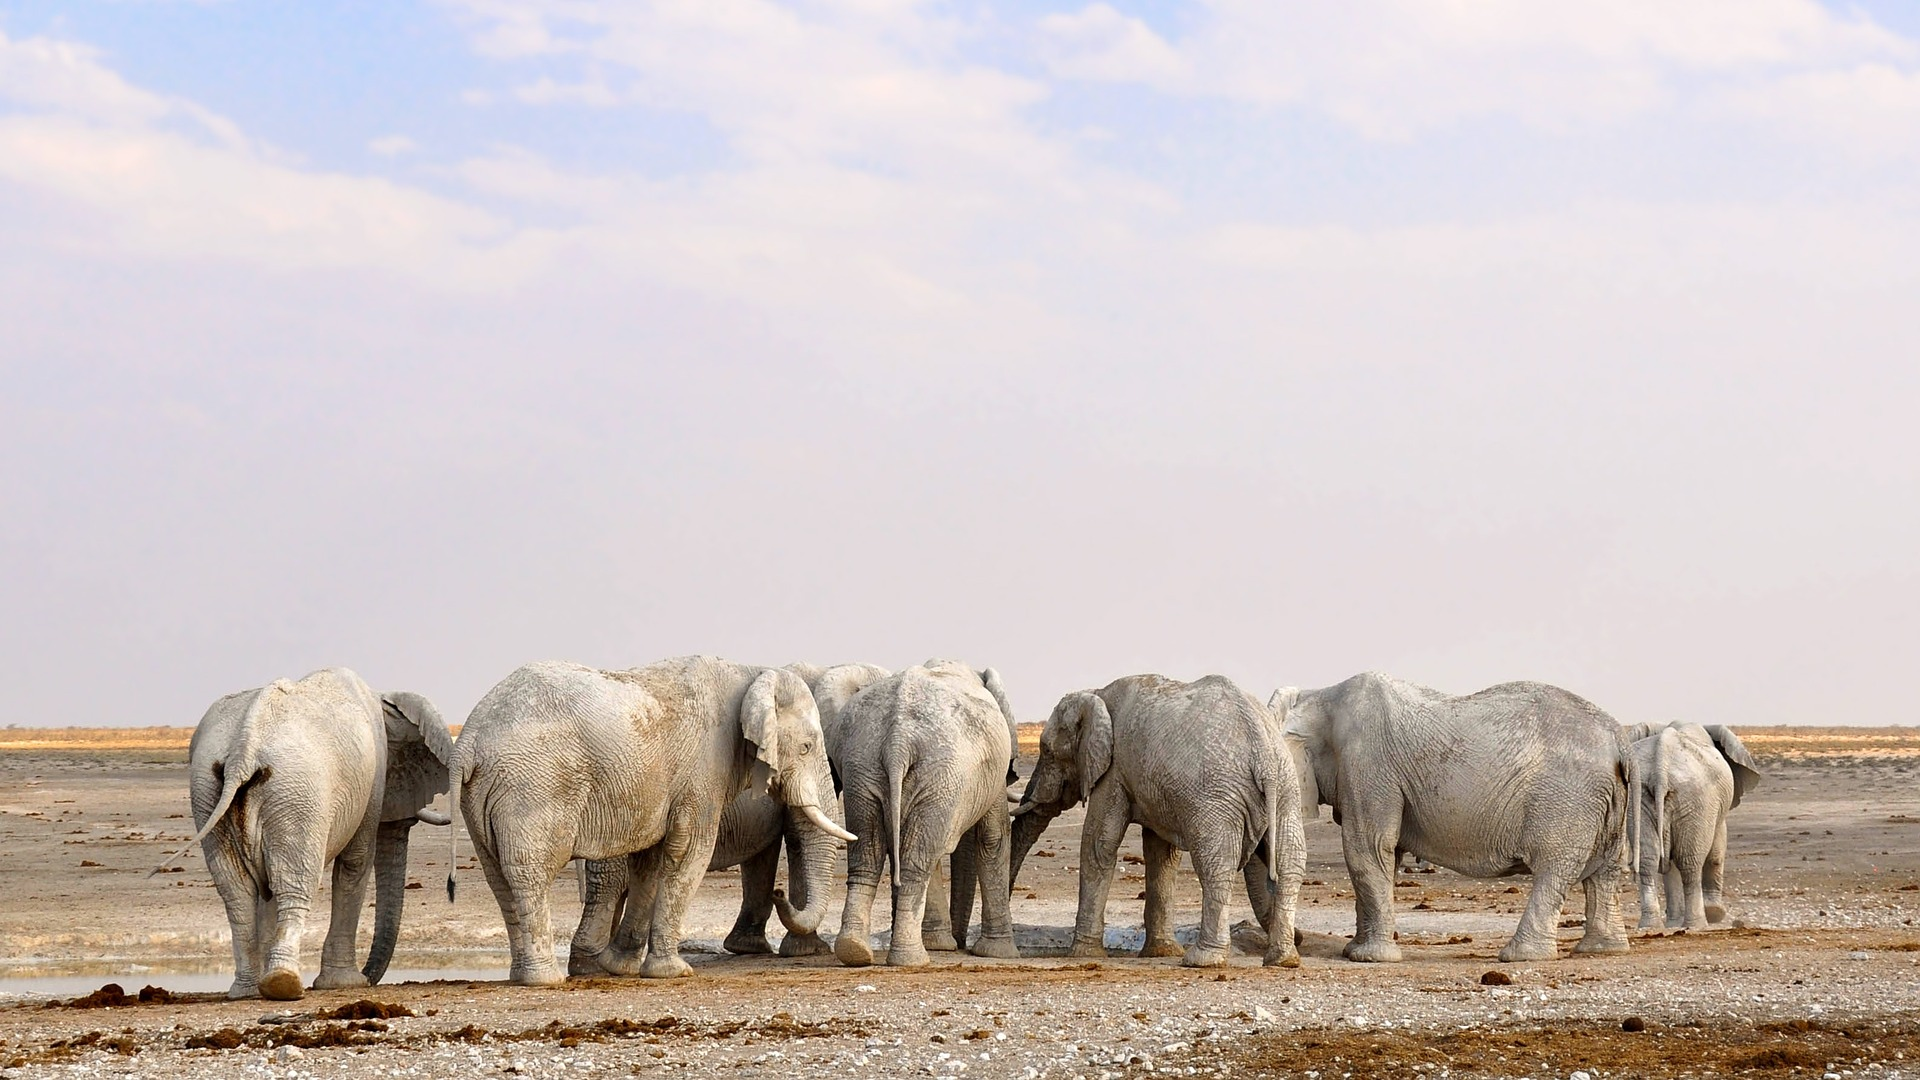 Herd of elephants in Namibia